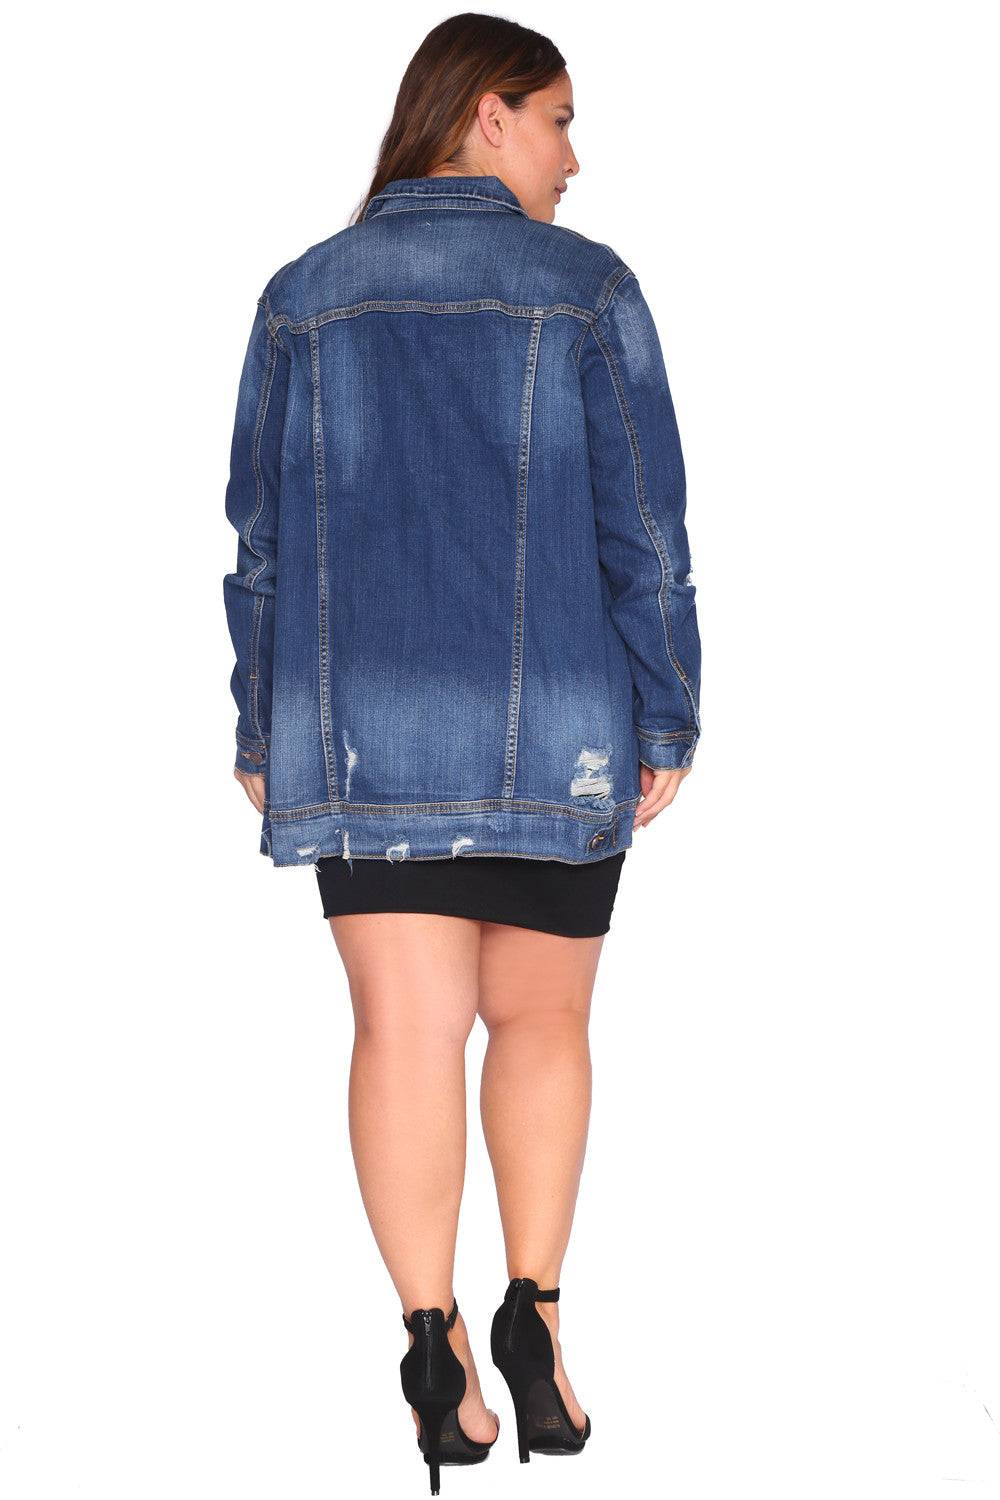 DOMINIQUE DENIM JACKET